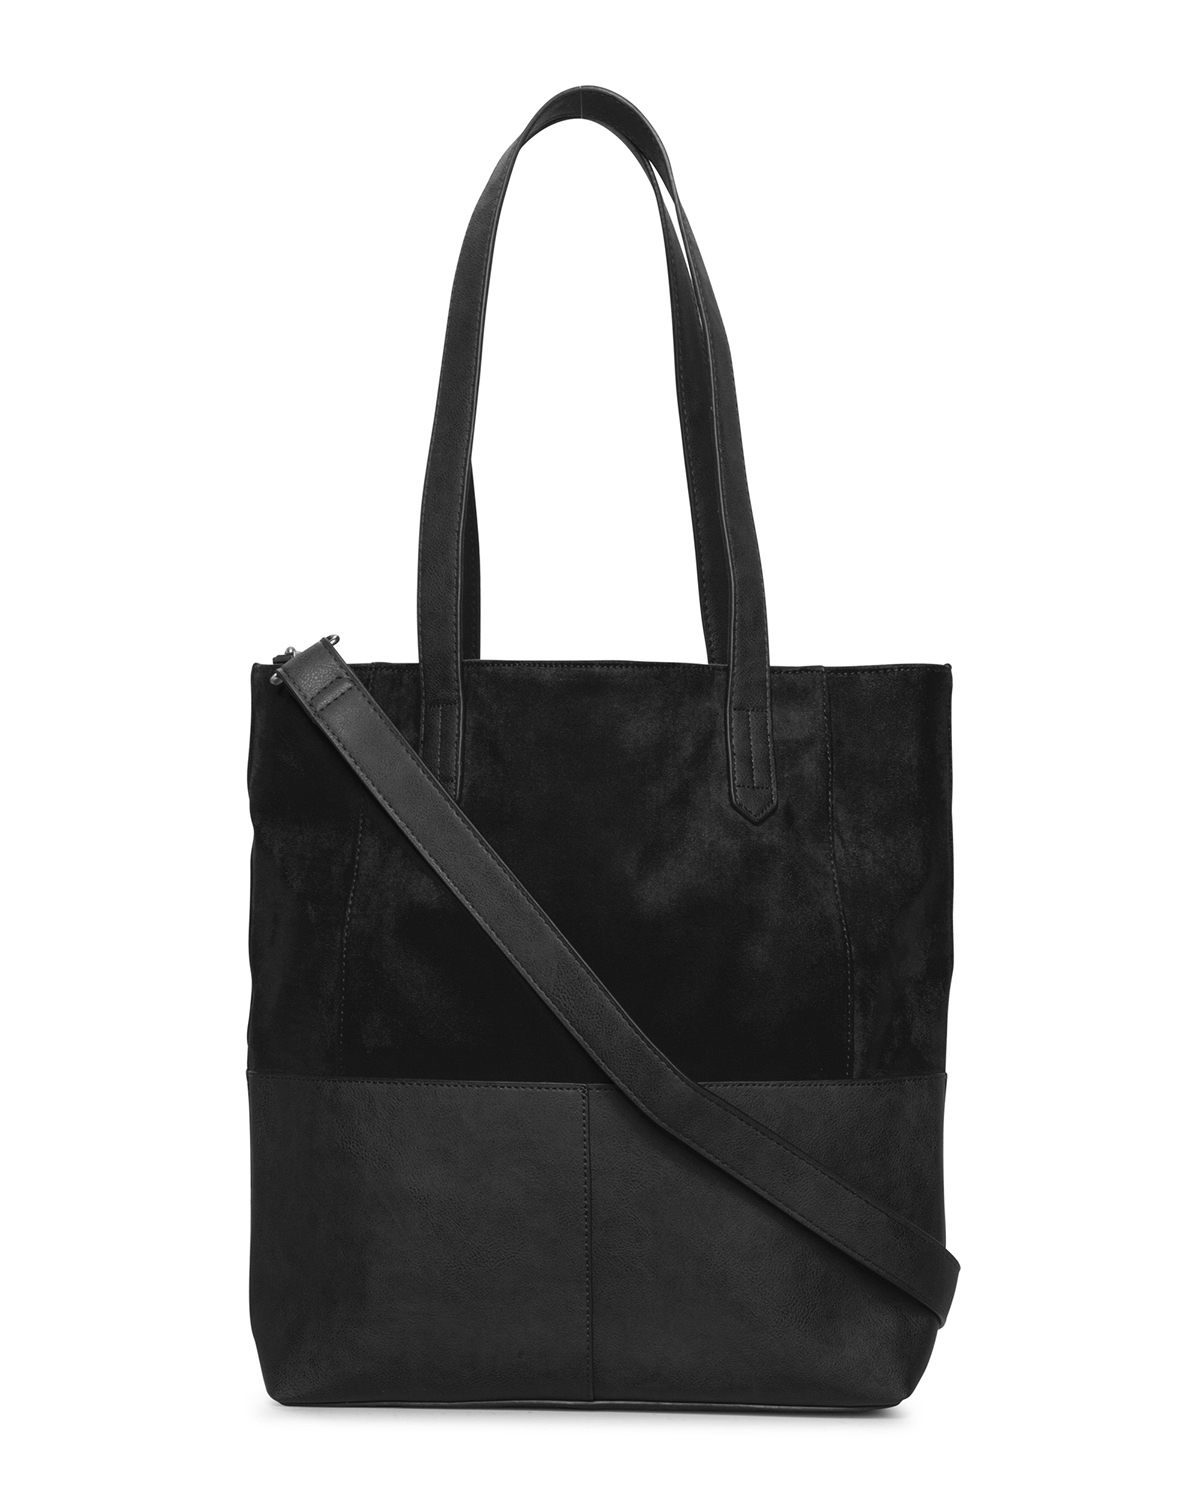 Damen Shopper Damen Shopper Im Lederlook 82008802 We Fashion